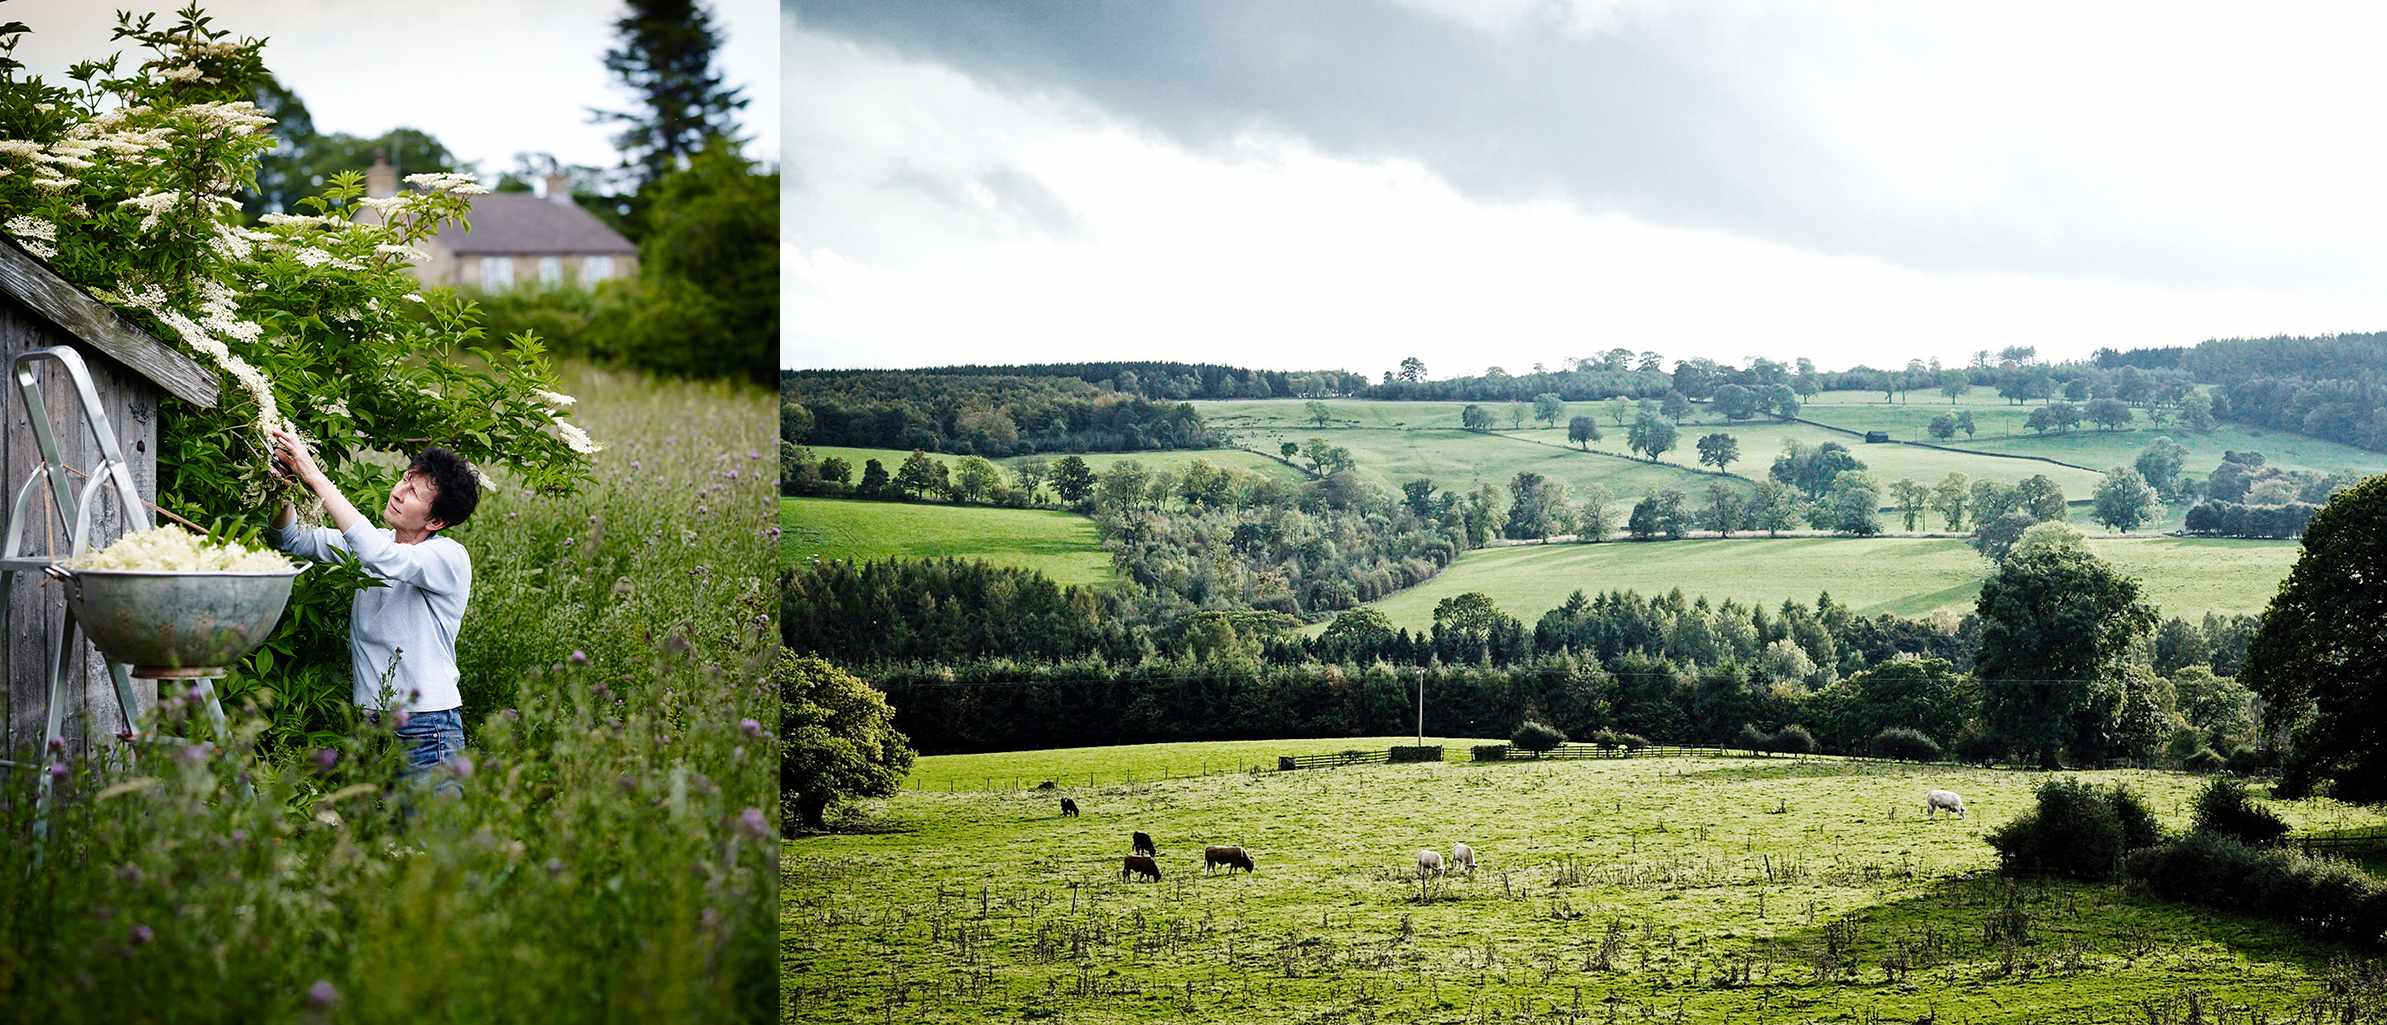 Two images, one is of rolling fields in Yorkshire and the other is a woman picking fruit in a field